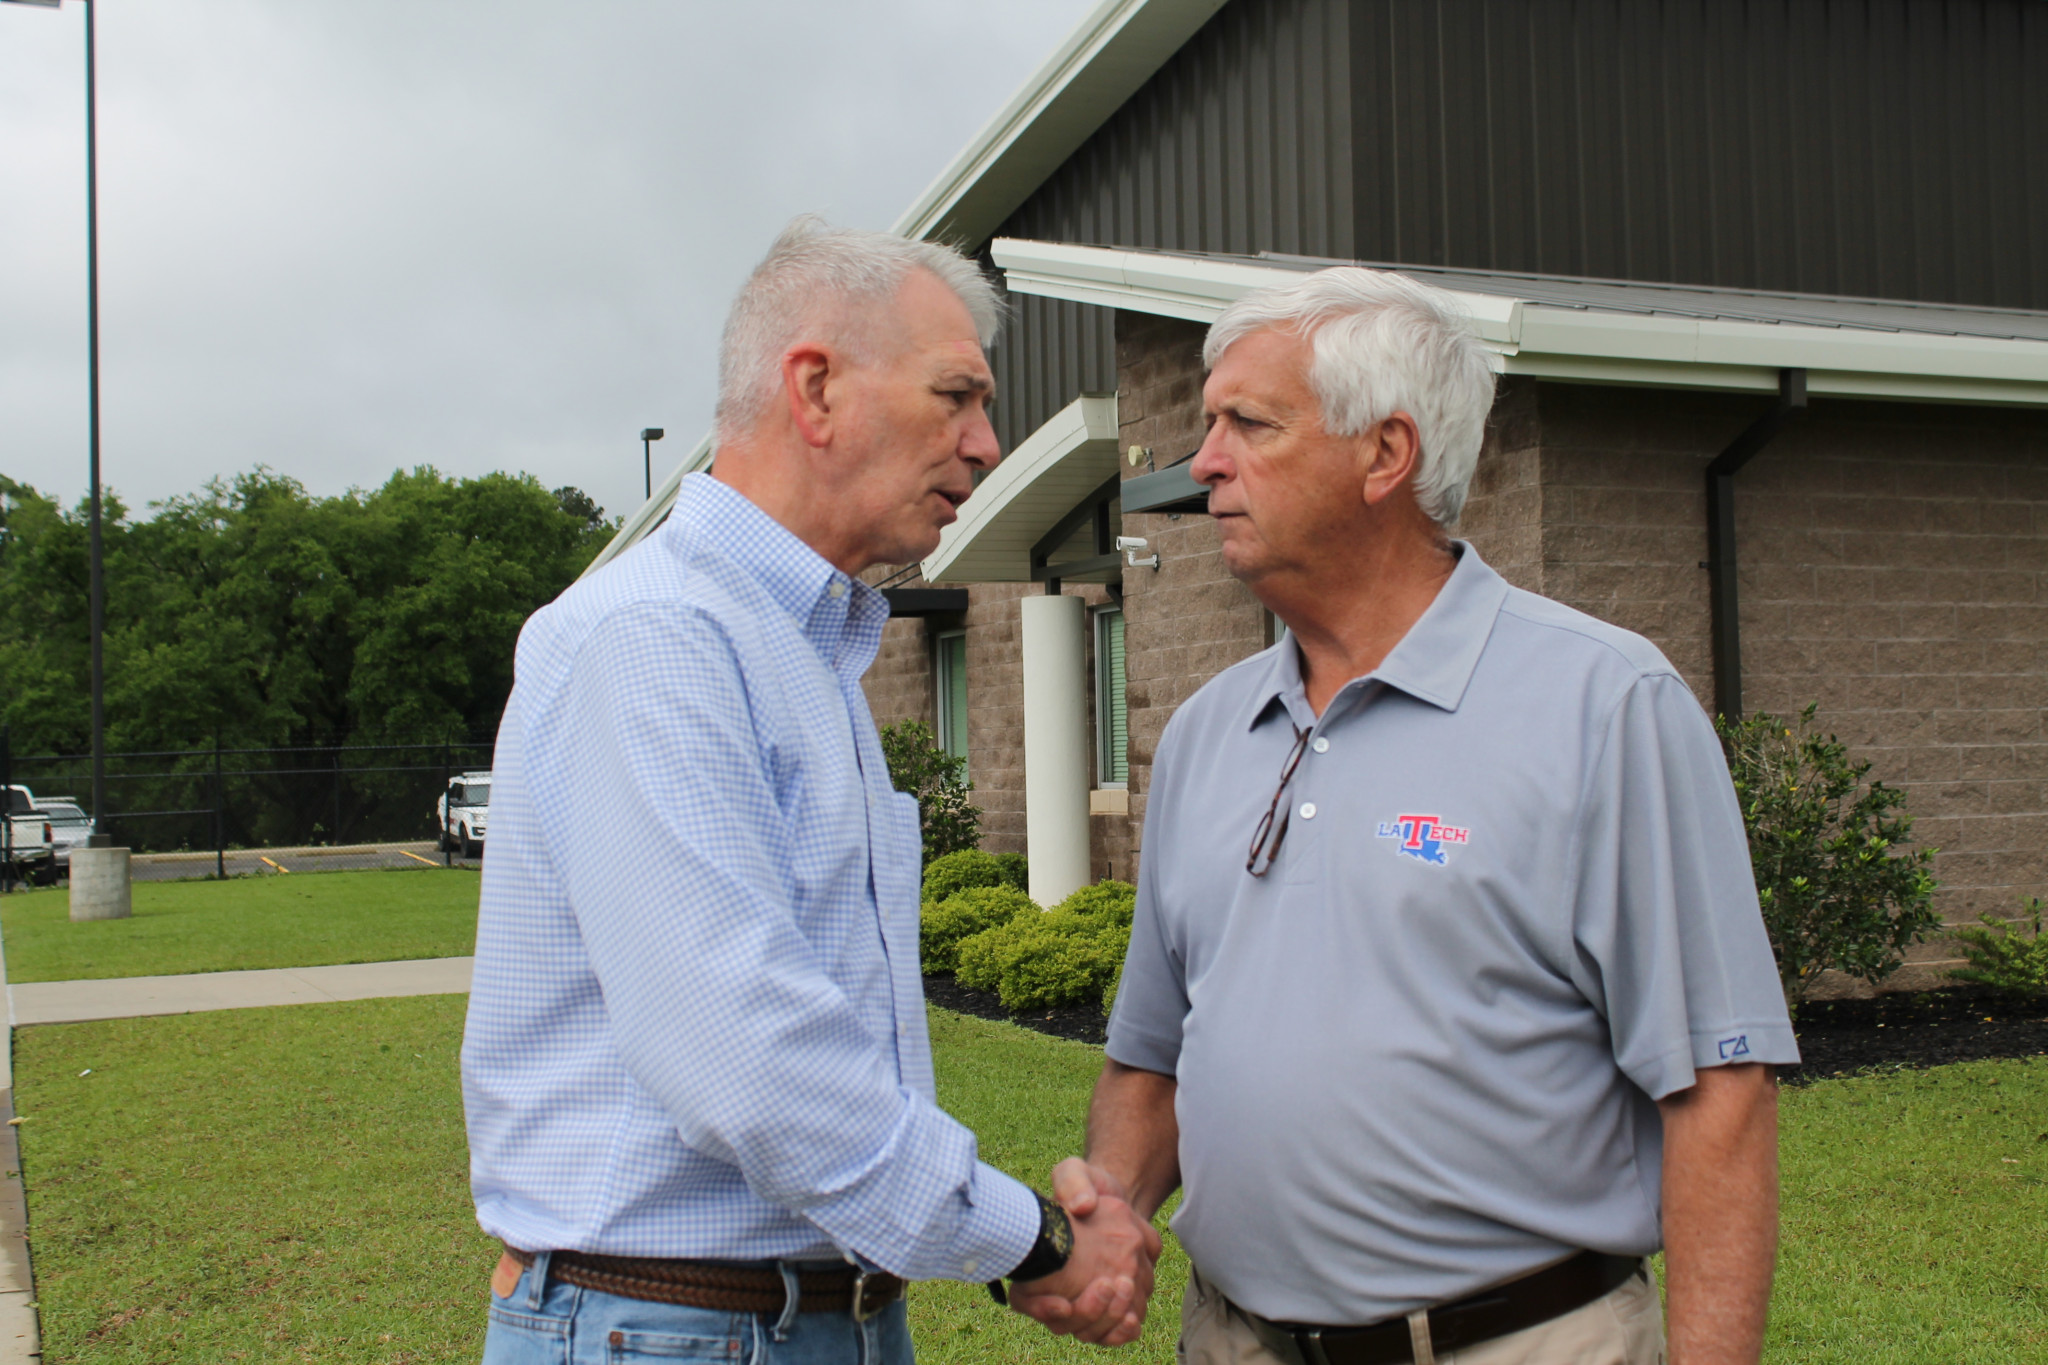 Congressman Ralph Abraham, left, and Walker outside the Emergency Operations Center — April 25